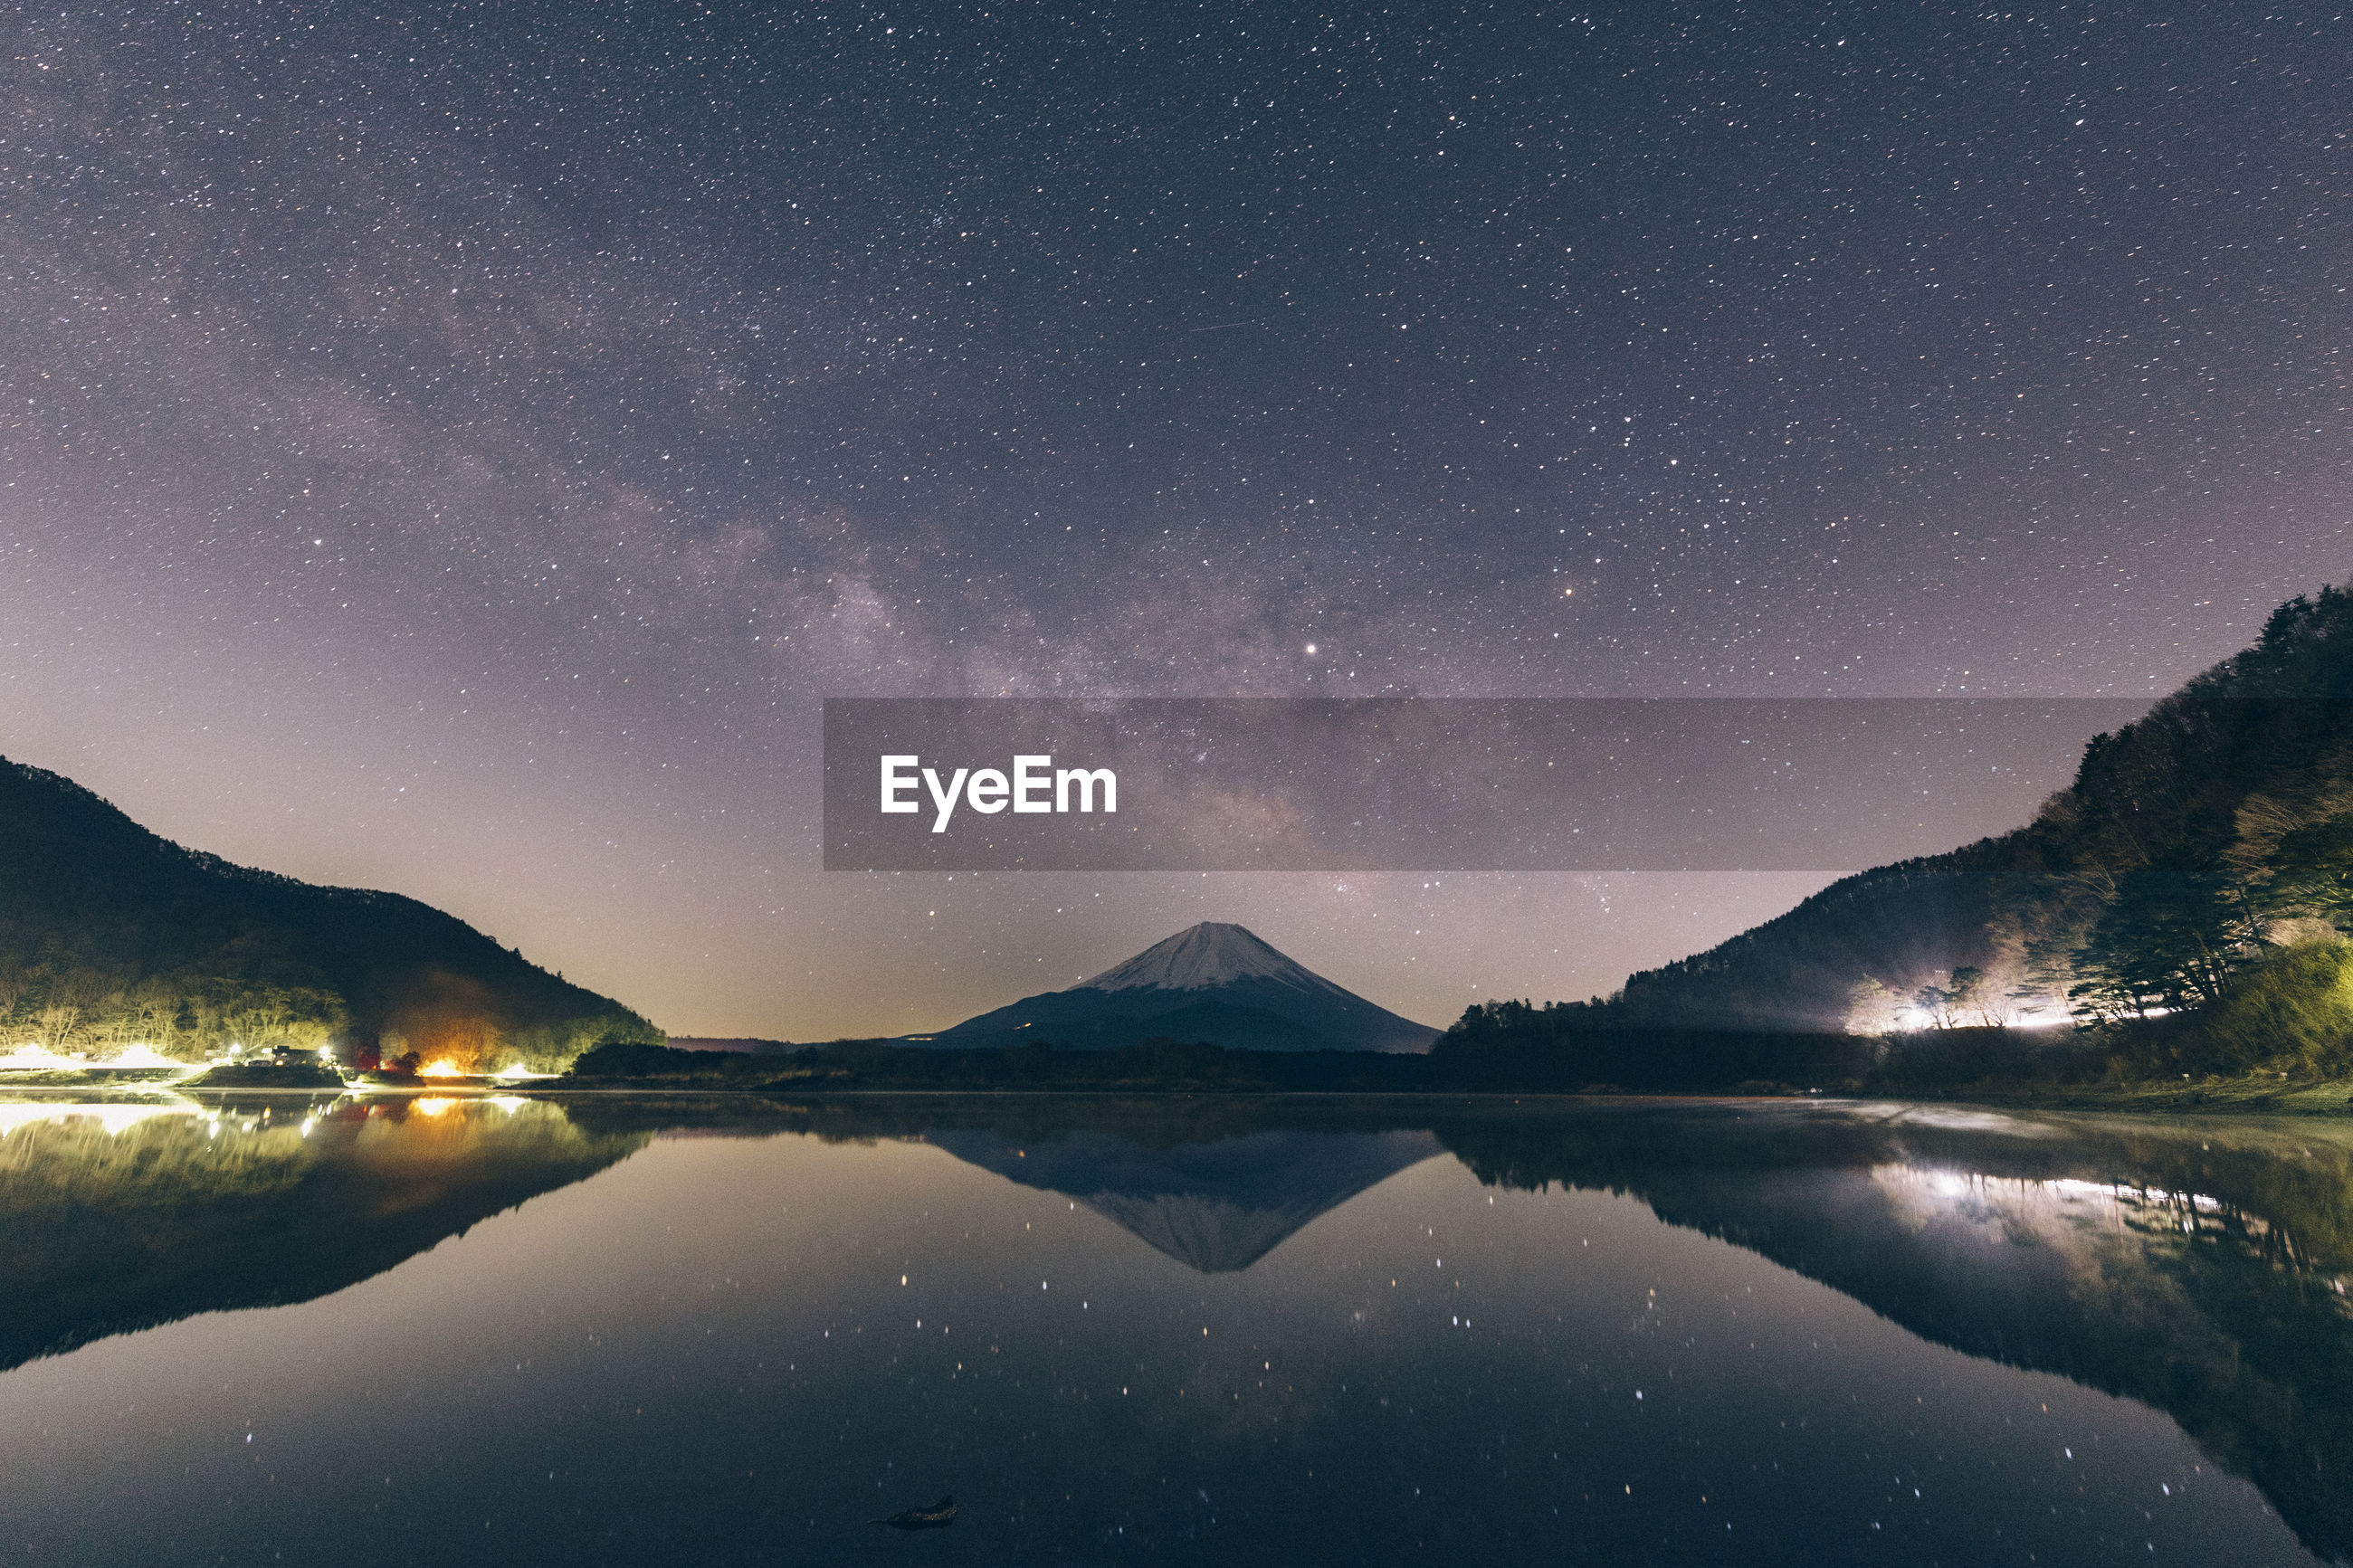 Reflection of mountains in lake against sky at night